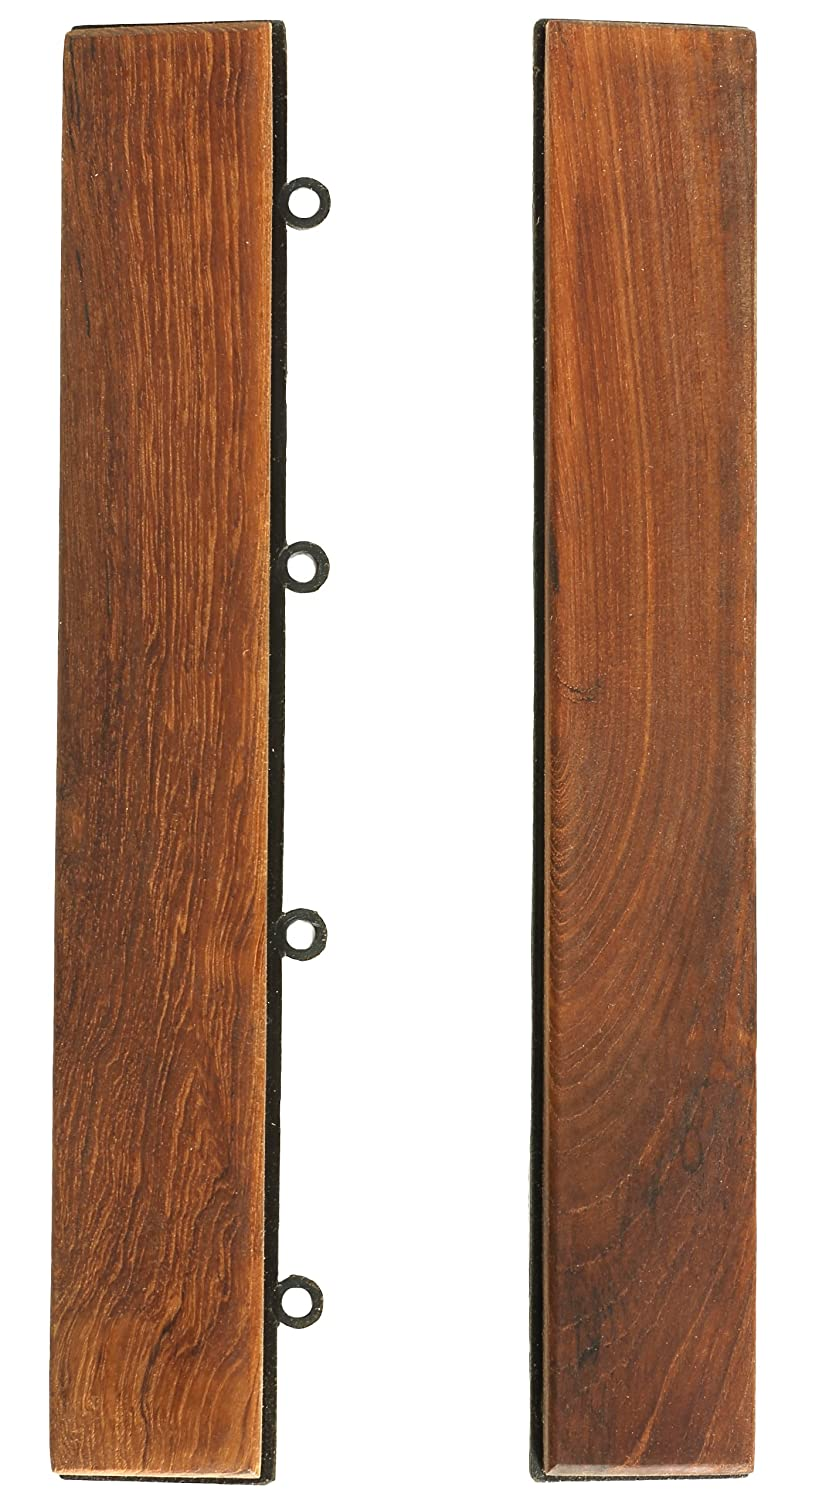 Bare decor ez floor end trim piece interlocking flooring for Wood floor pieces